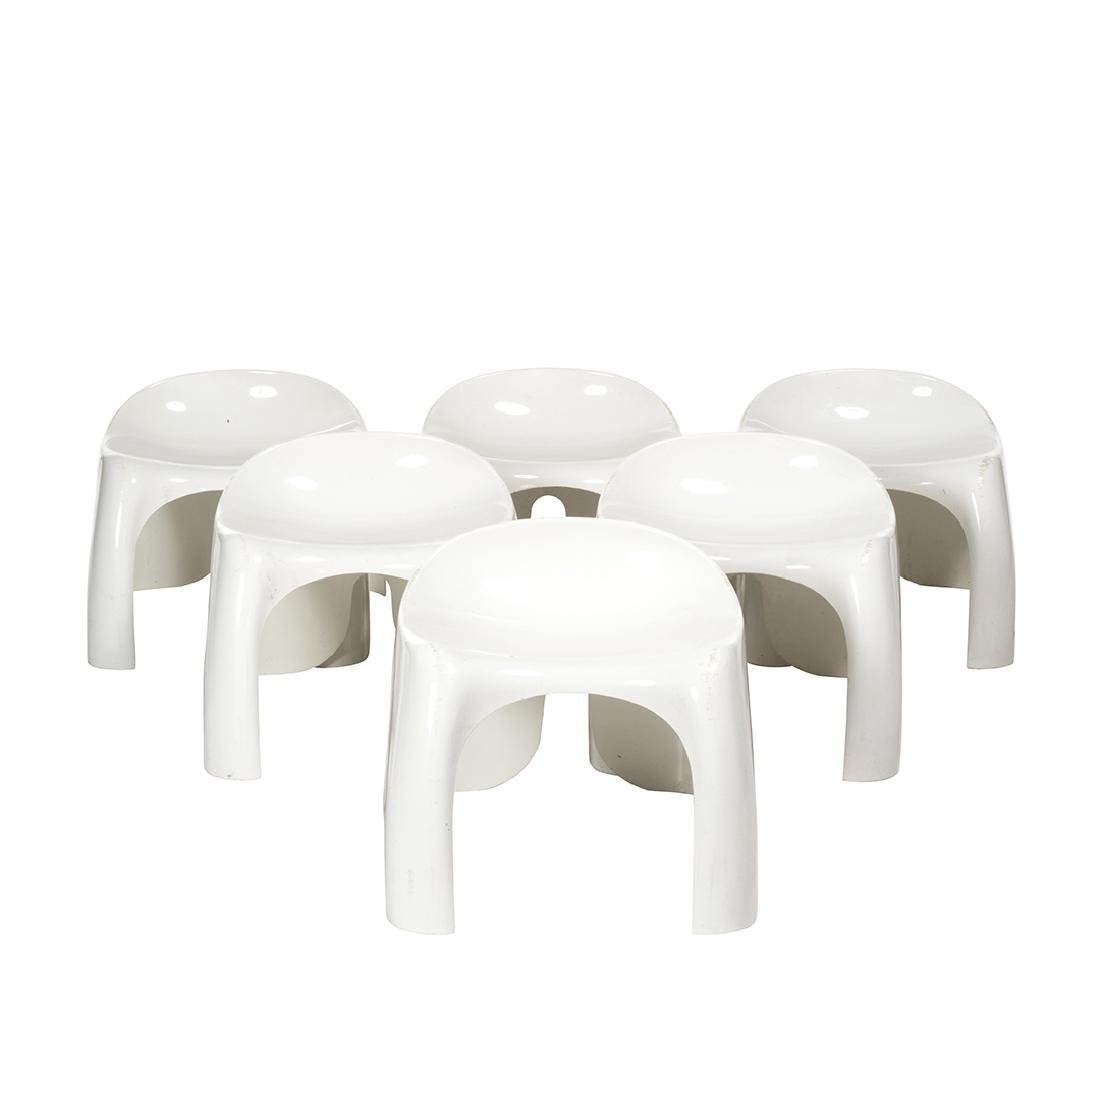 Stacy Dukes Efebo Stools (6)